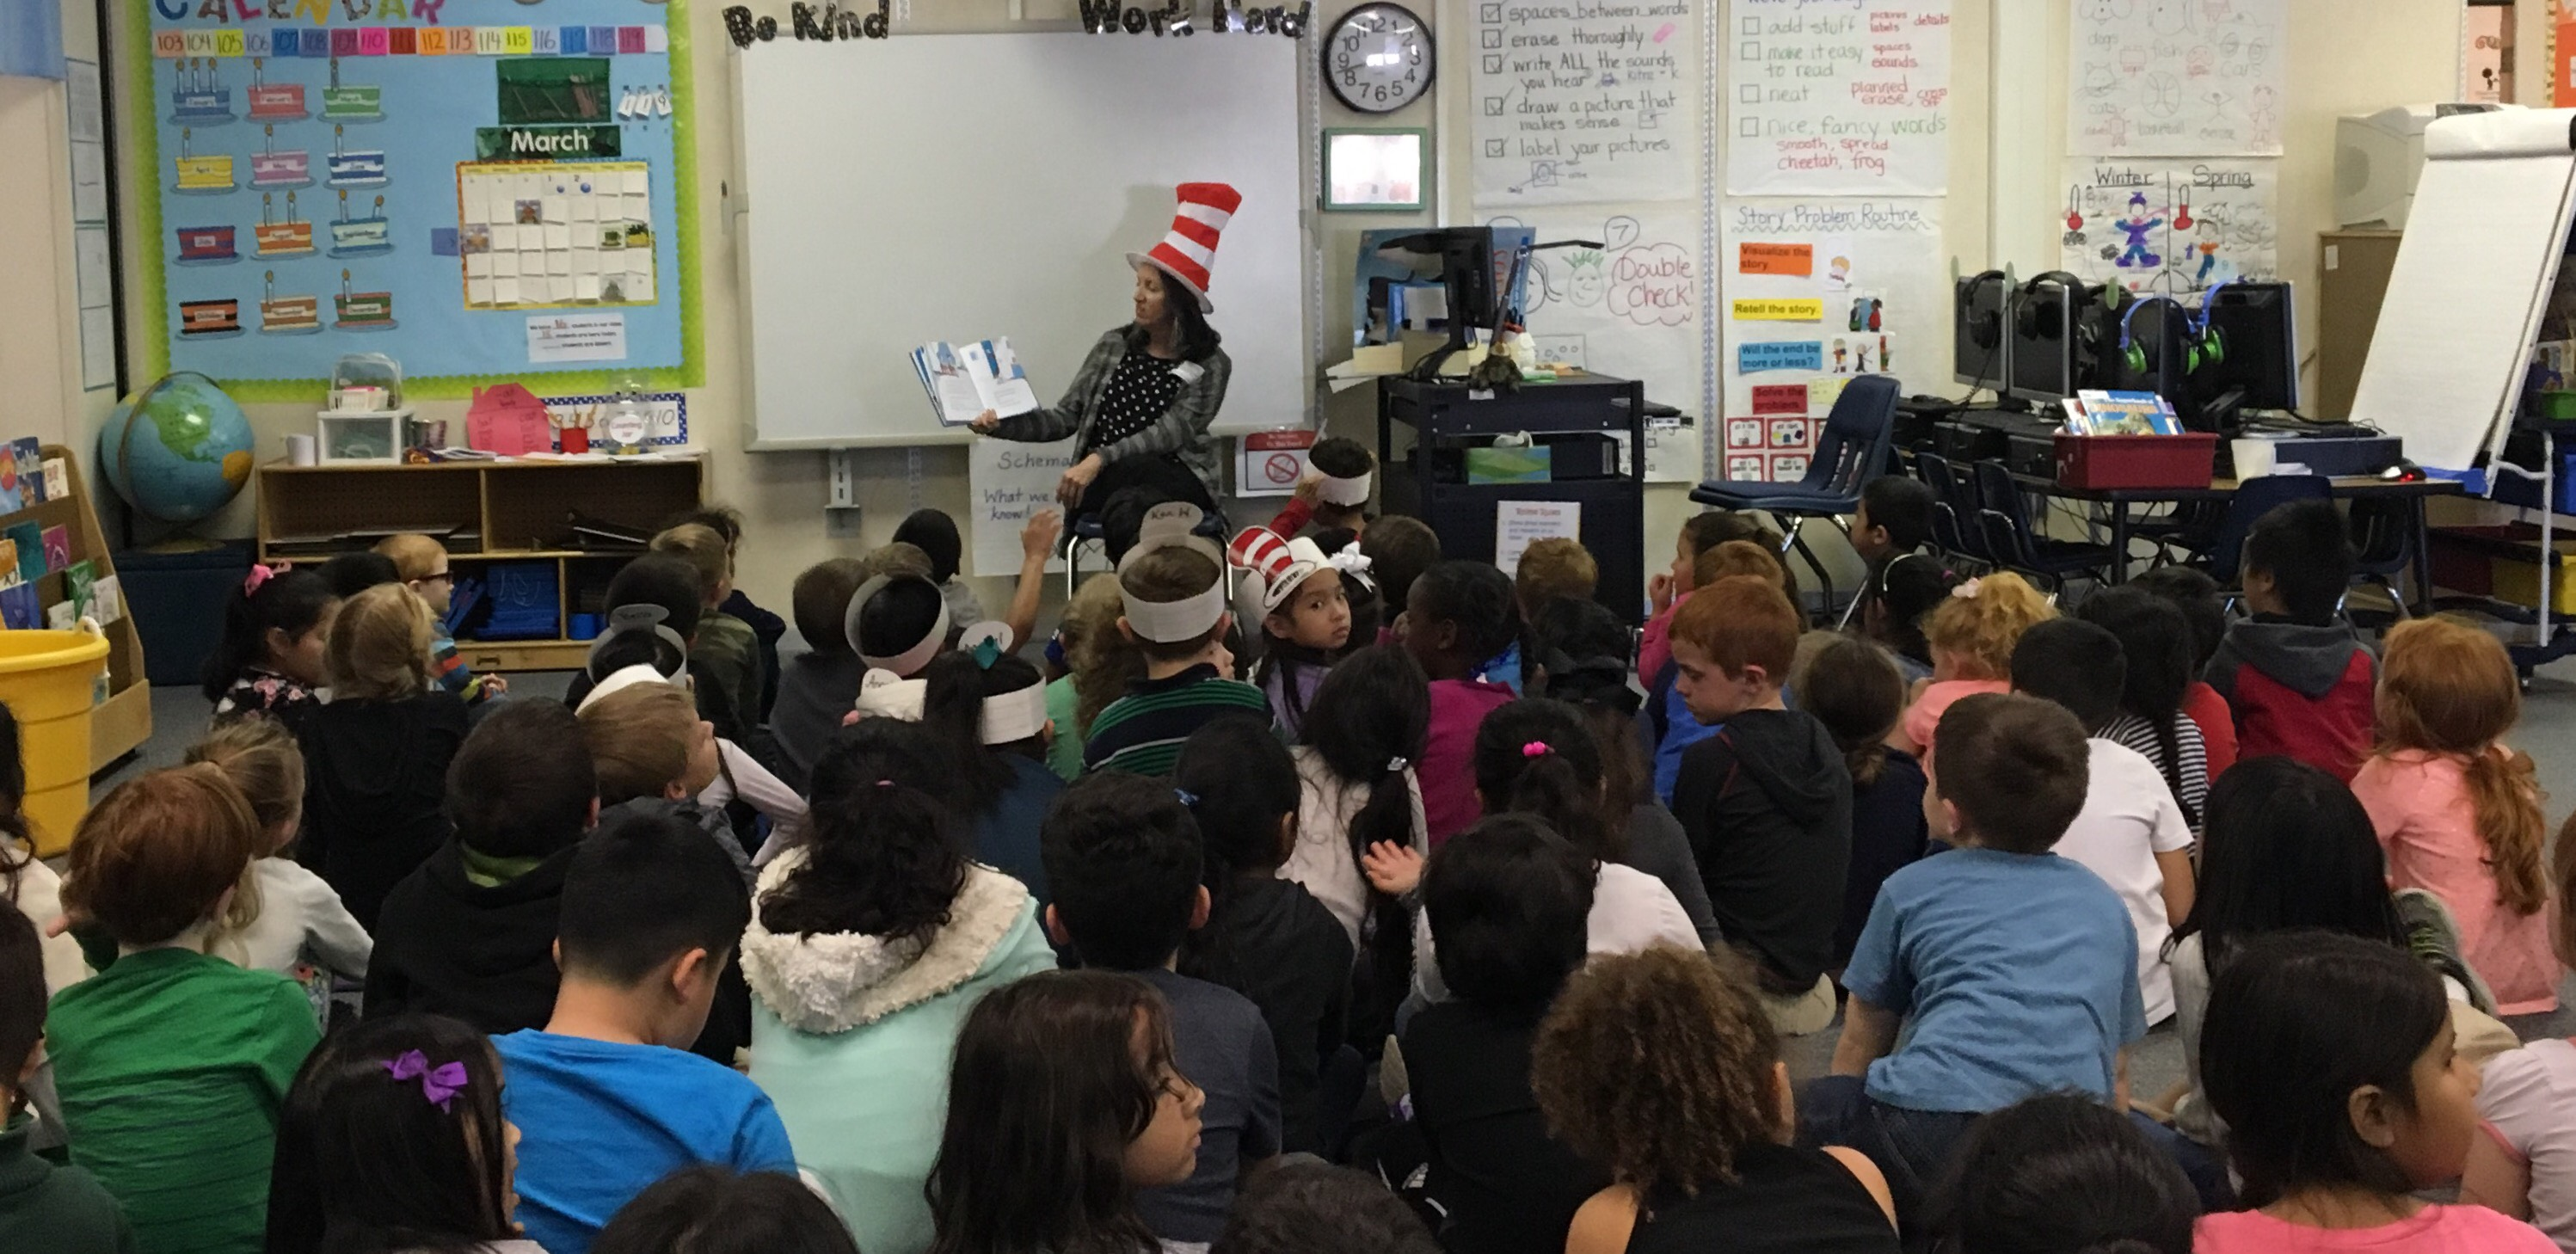 "Furneaux Elementary commemorate Dr. Seuss' Birthday & National Read Across America Day by reading numerous Dr. Seuss books to Furneaux students. Furneaux had two very special readers come in to read to them. Mrs. Brown from Metrocrest Services and Mrs. Parker. Mrs. Parker also wore a ""Cat in the Hat"" themed hat as she read to the students."